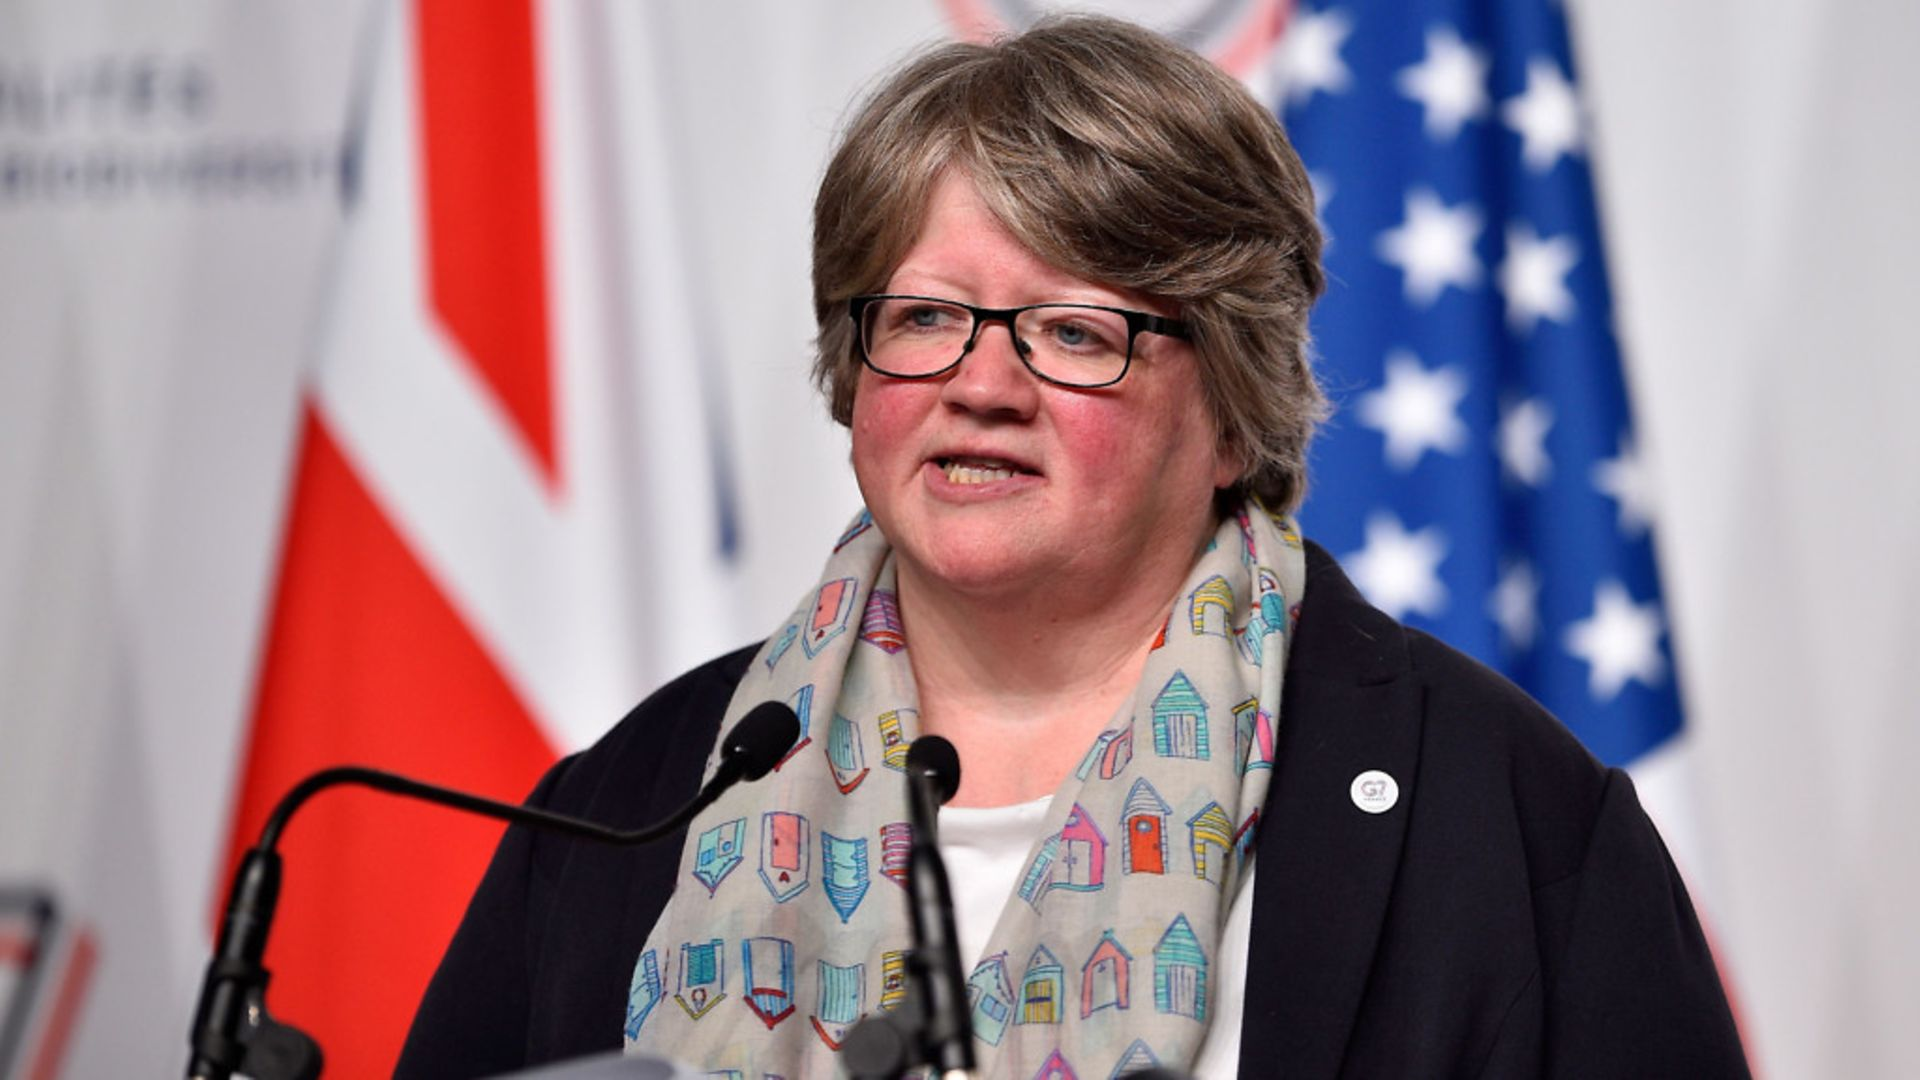 Therese Coffey, seen delivering a speech at a G7 environmental summit, is a master of the meaningless - Credit: AFP/Getty Images